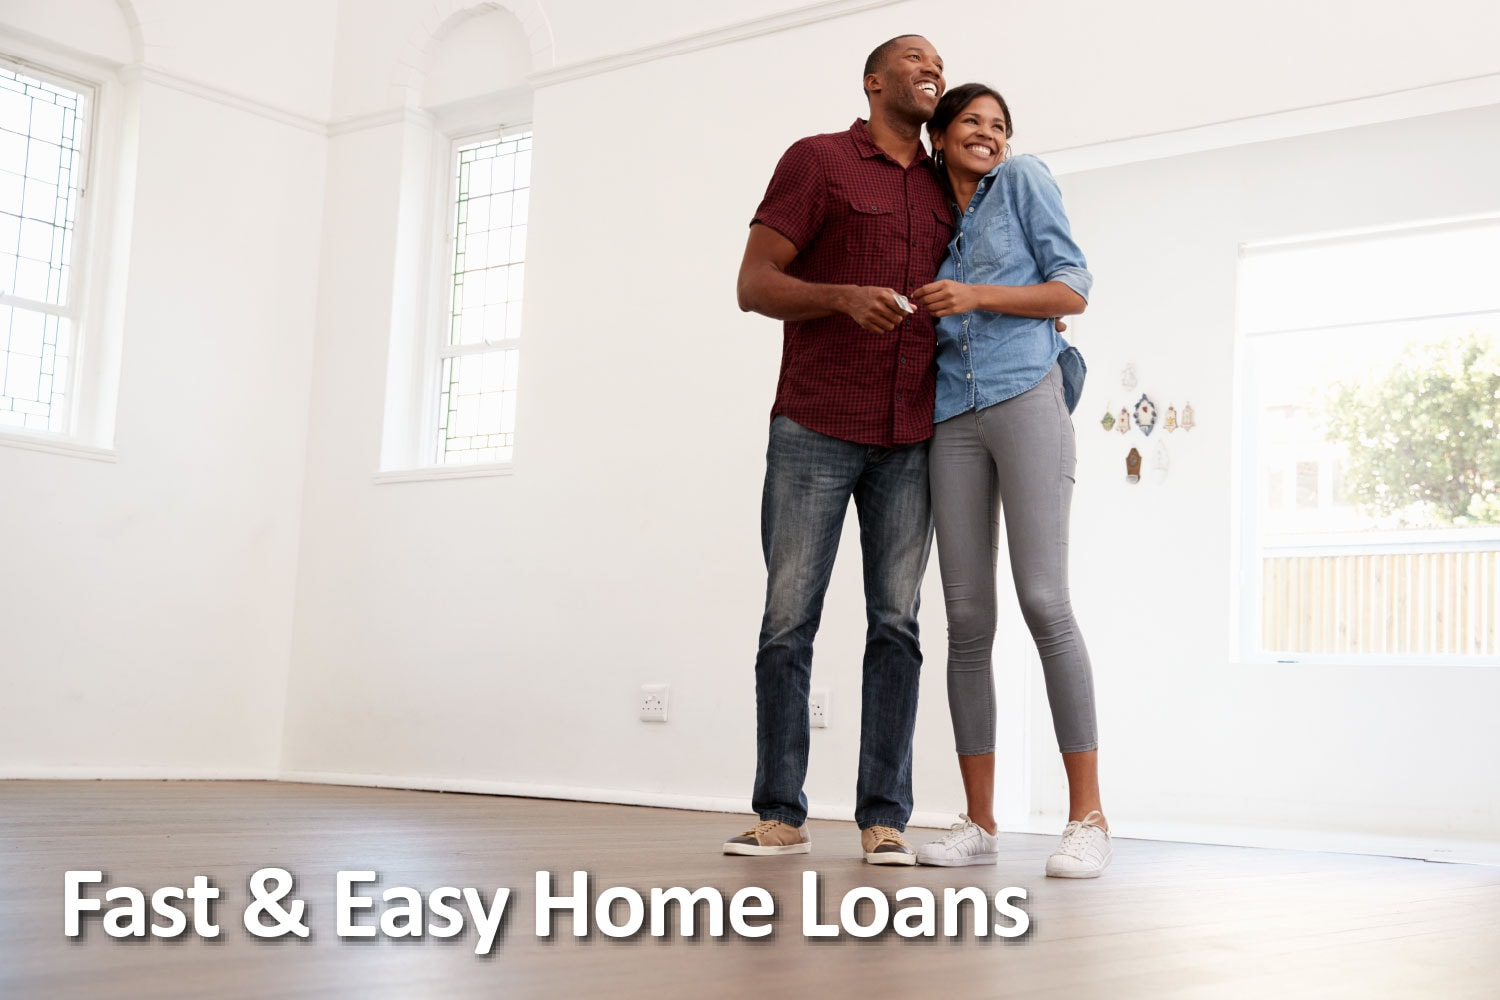 SMALL-BANNERS-HOMELOANS-REV2